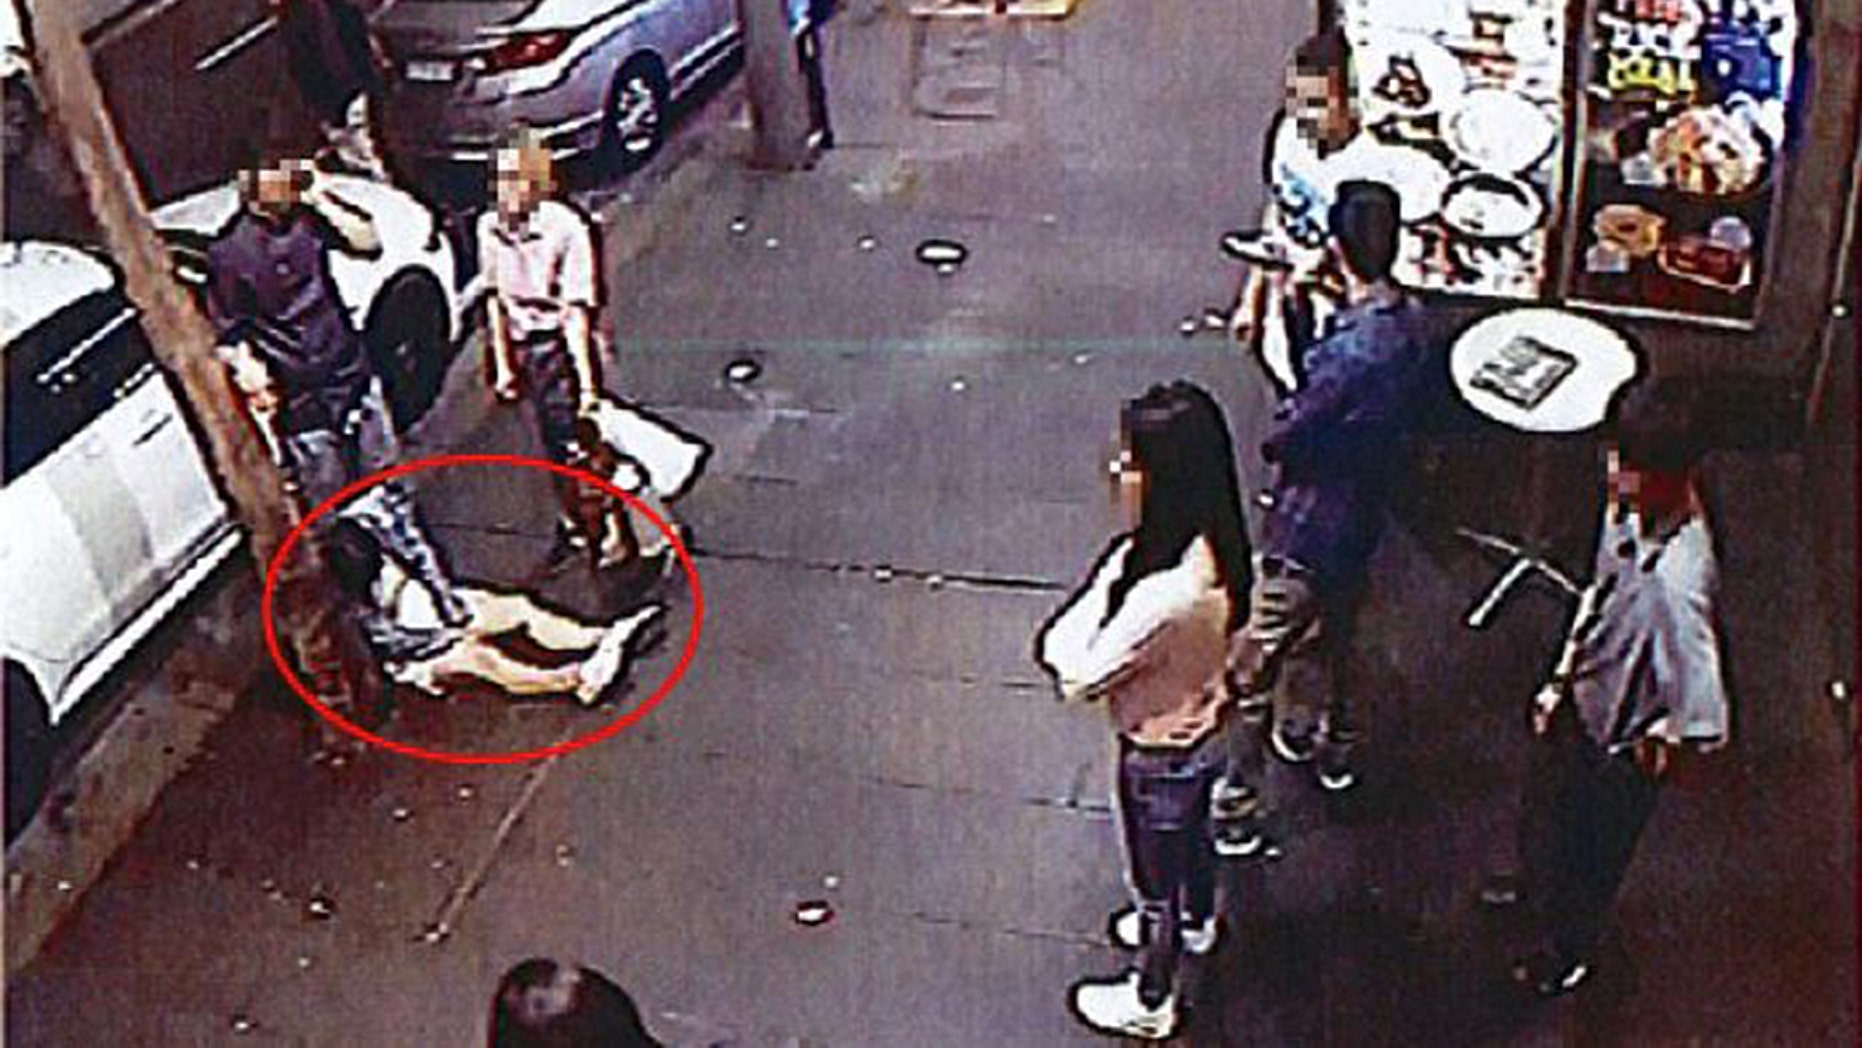 Gangnam Station, a Korean BBQ restaurant in Sydney, has been fined while authorities determine subsequent punishments.